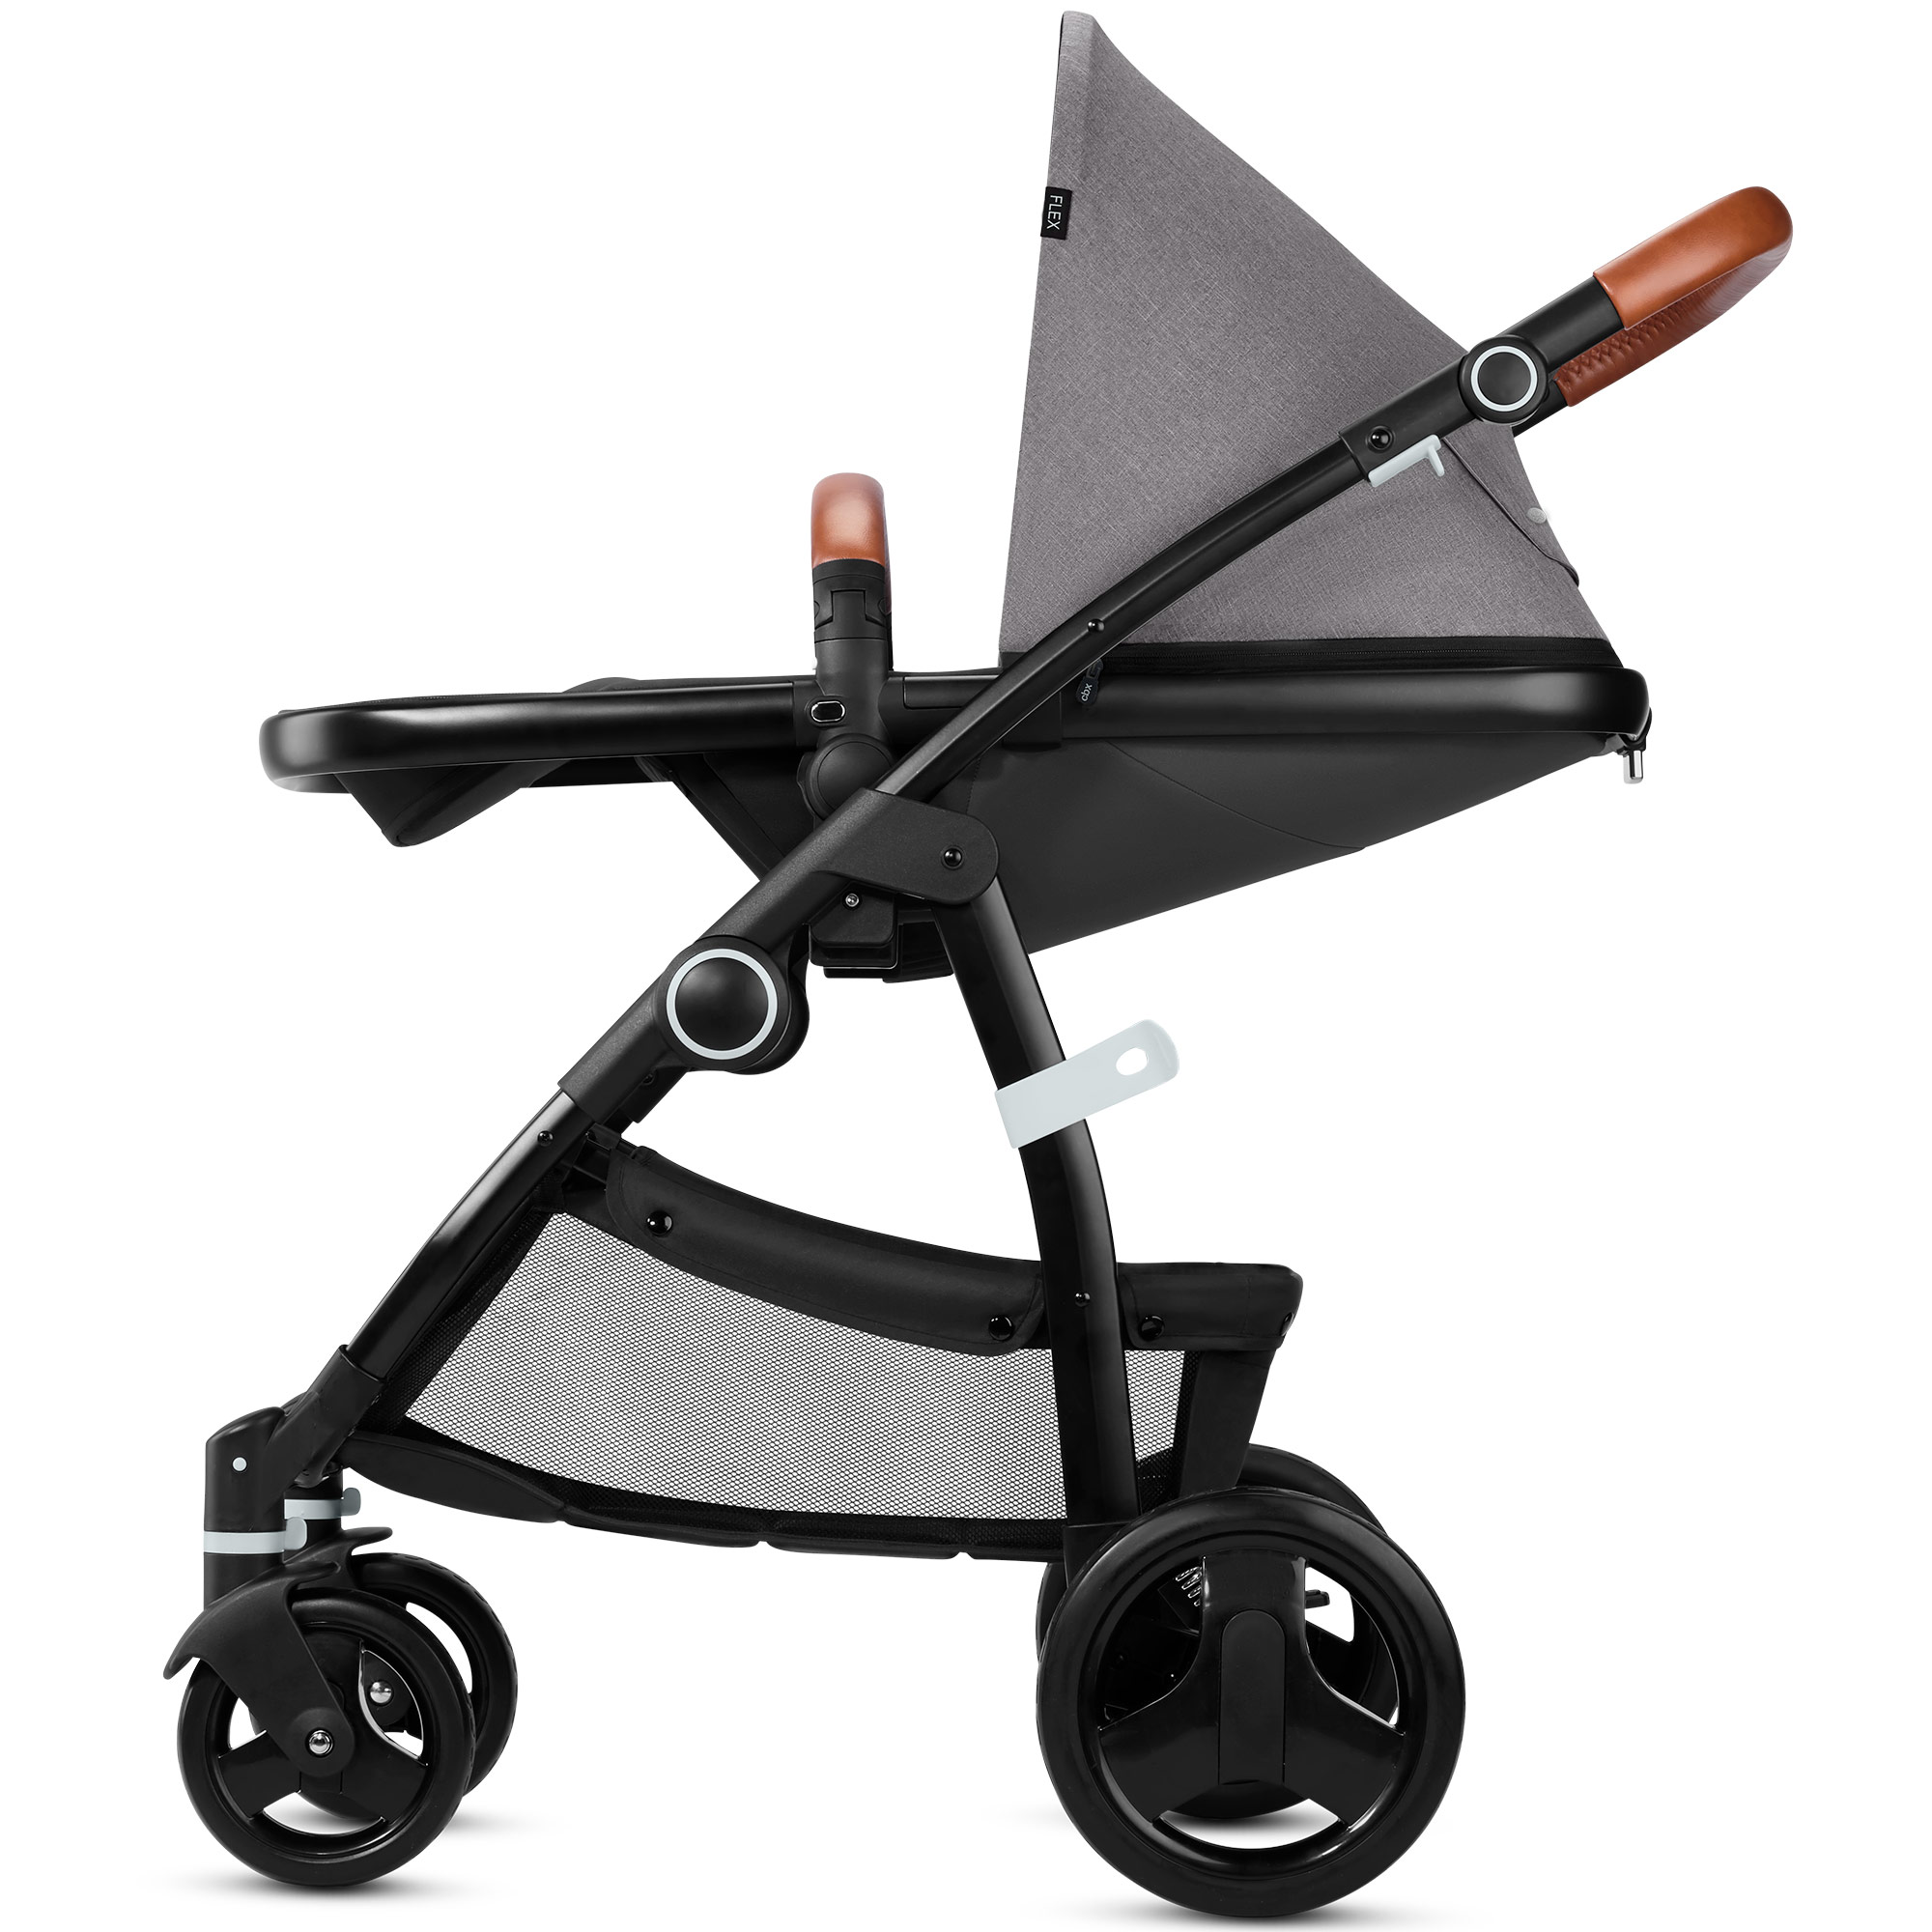 Stroller Travel System Ebay Details About Cbx Leotie Lux Stroller Pram And Carrycot Travel System